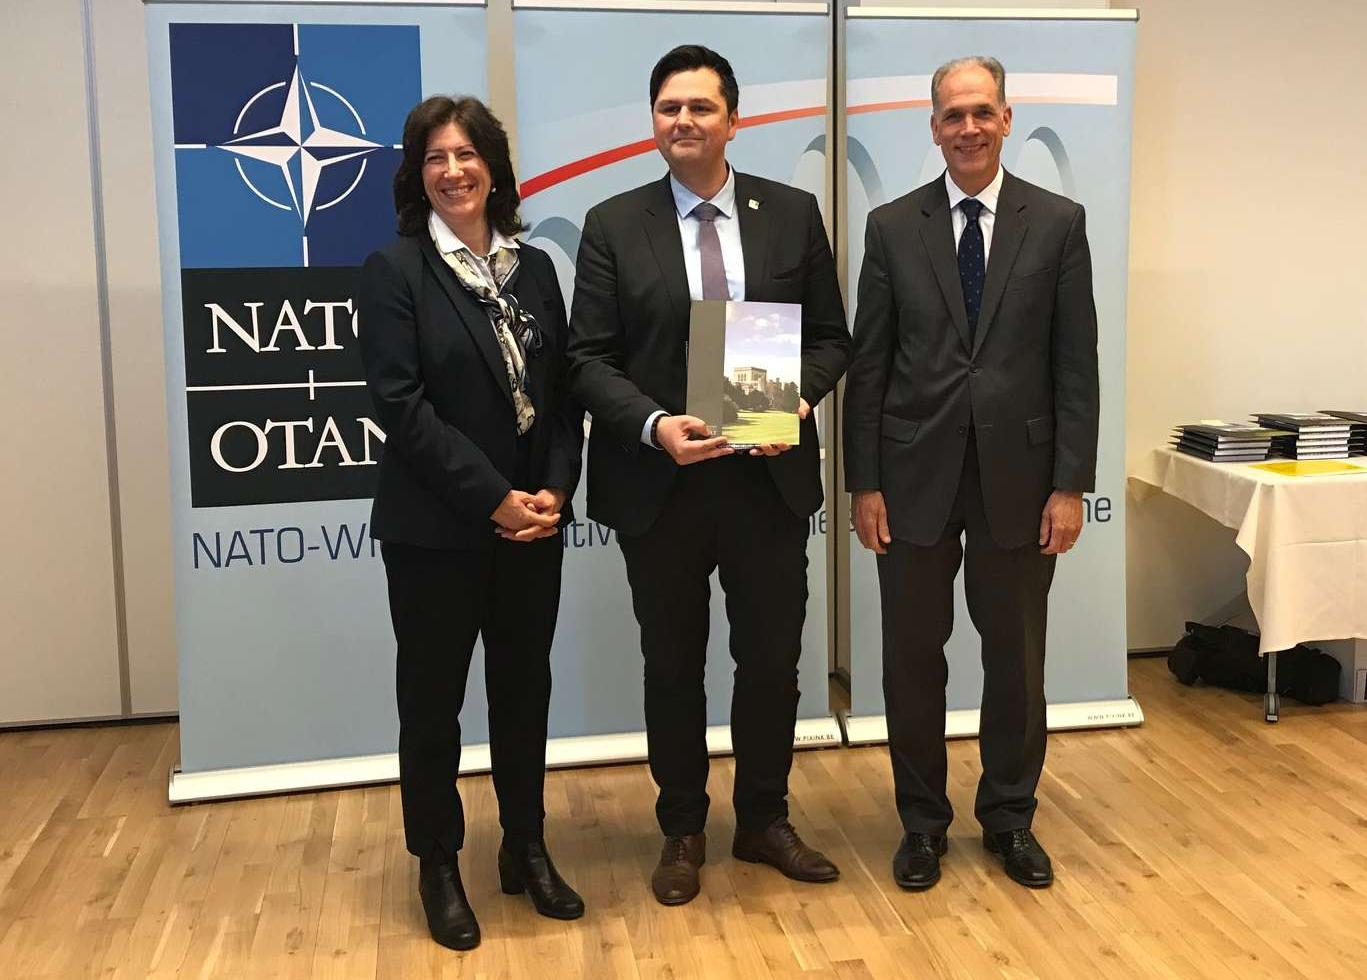 CMRE scientist graduated from the 10th edition of the NATO Executive Development Program